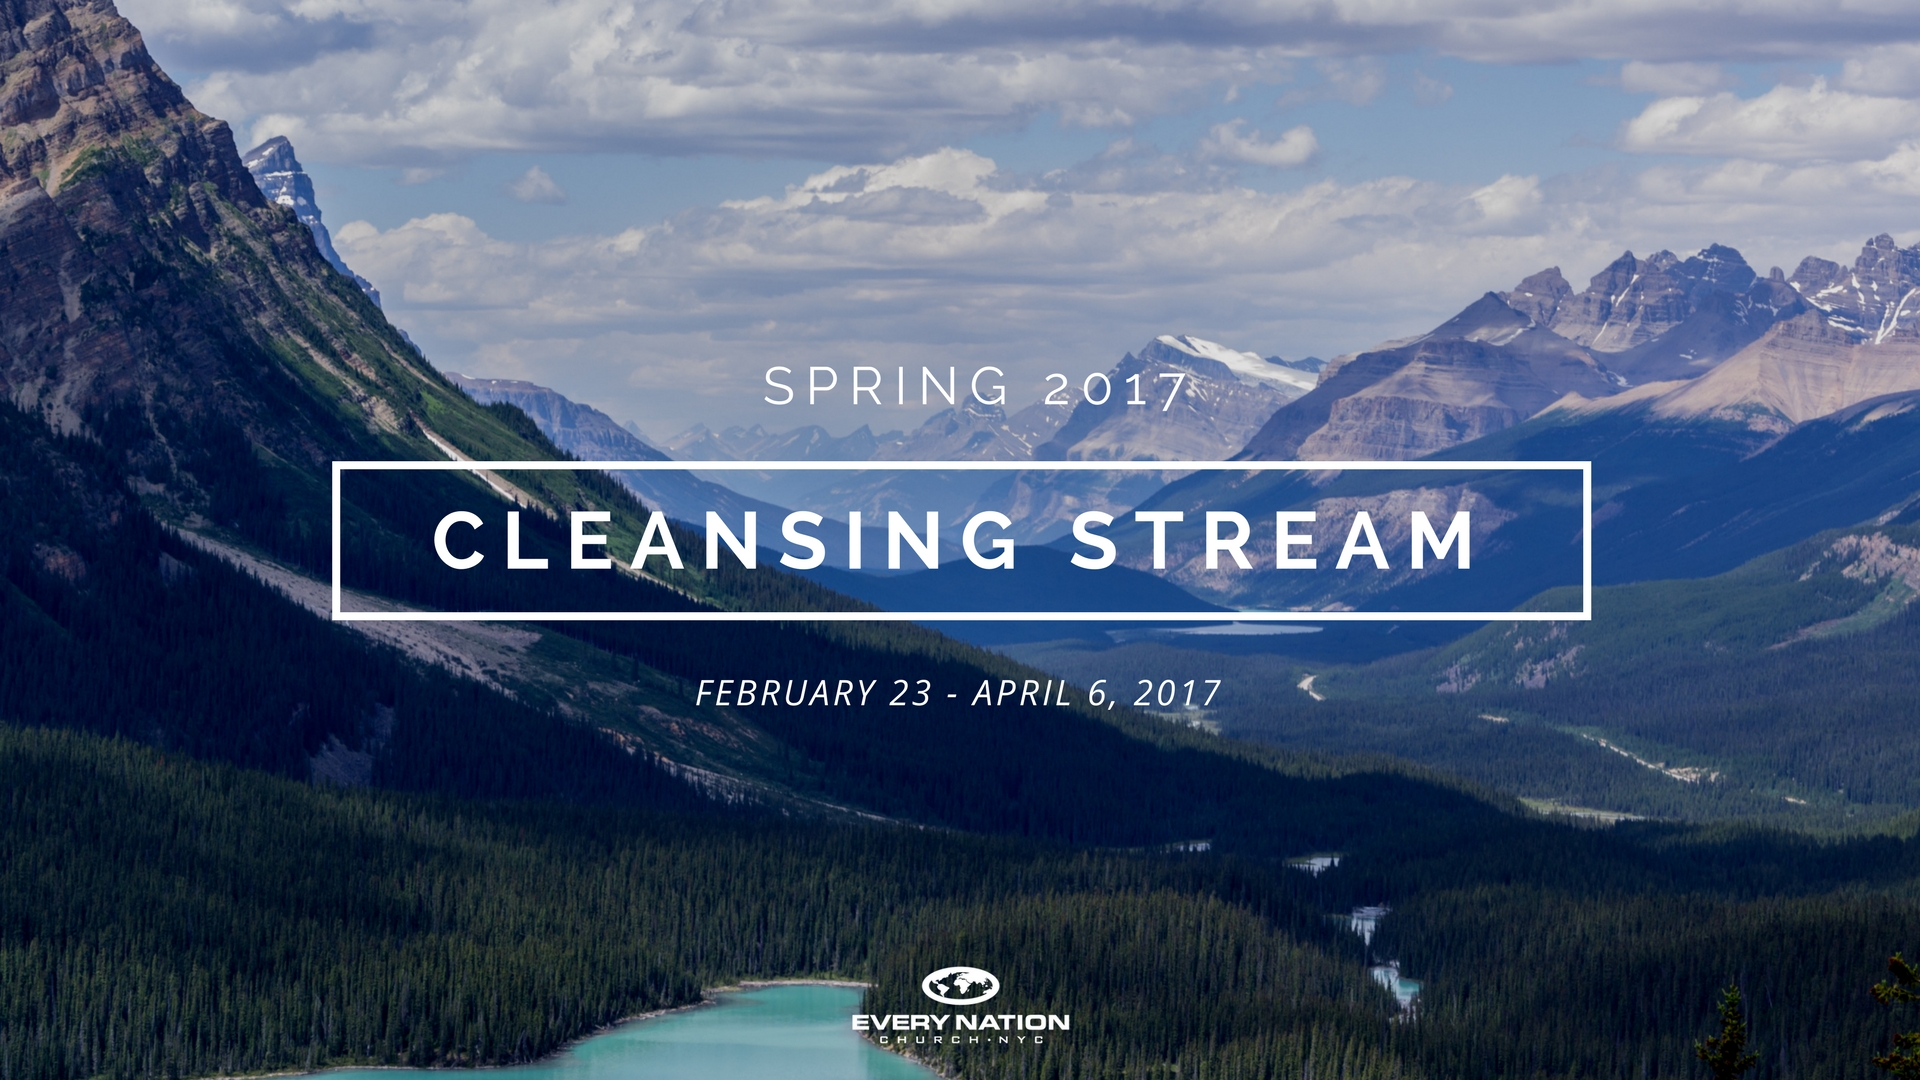 Cleansing Stream, Spring 2017